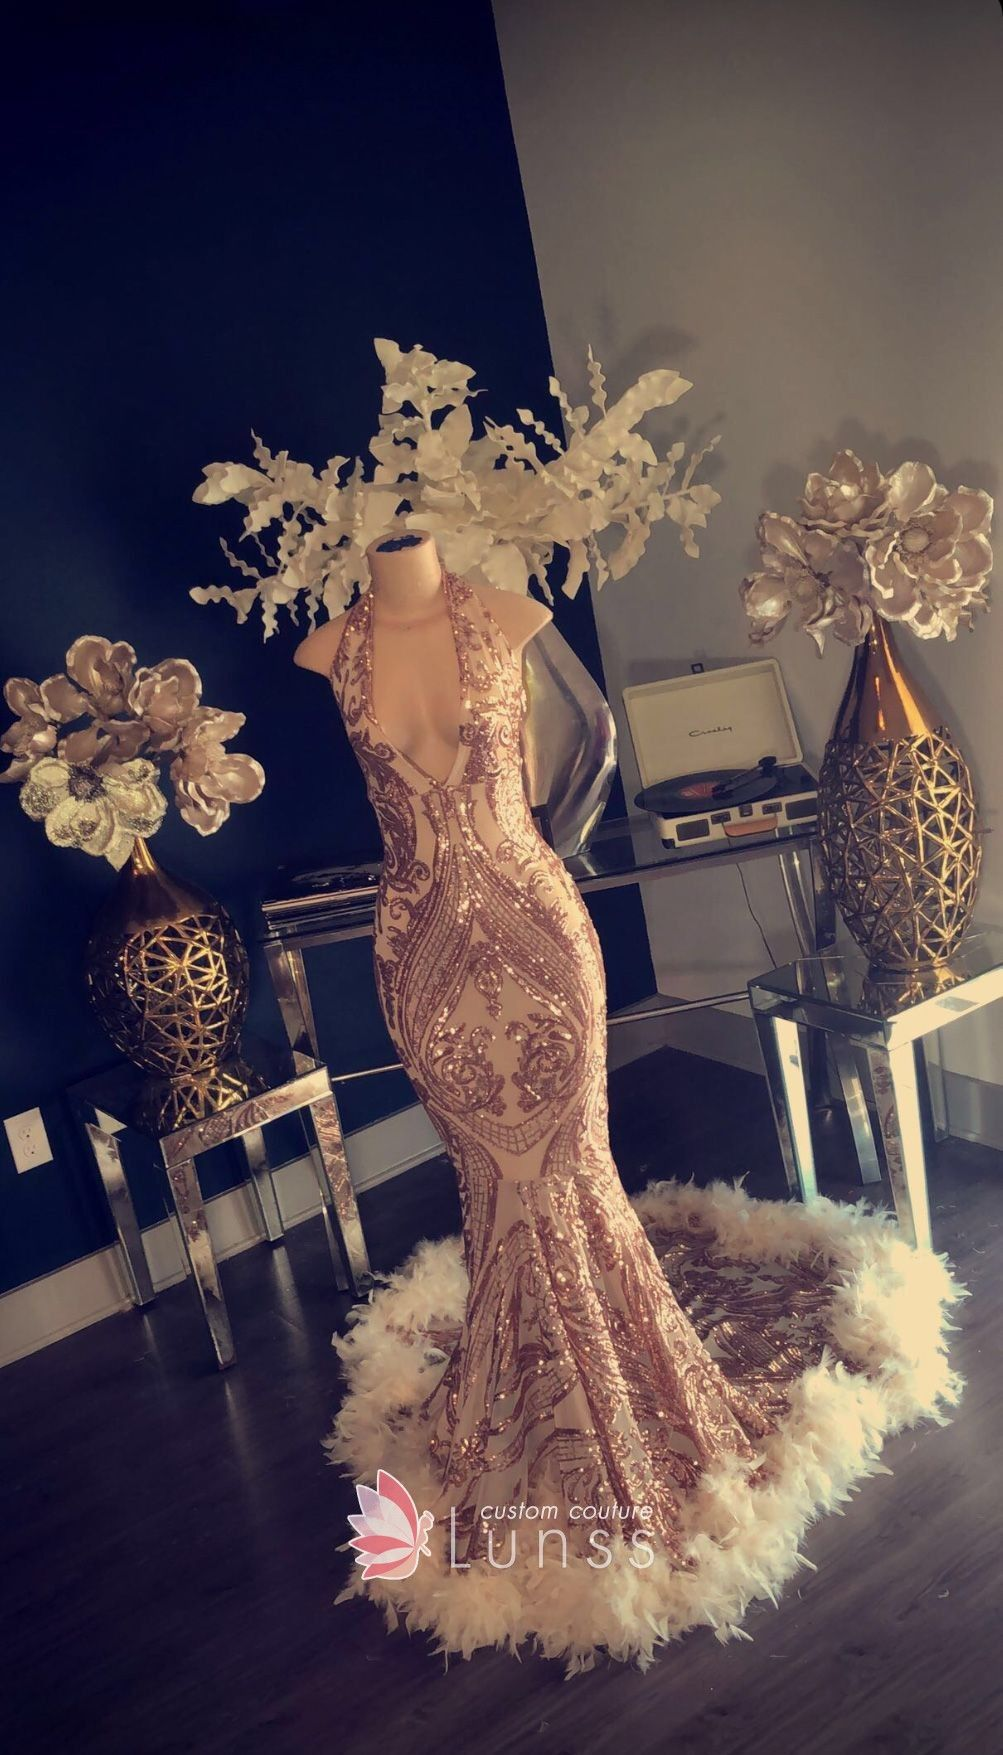 3c9de8ce Sparkly patterned gold sequin floor length mermaid prom gown with long train  and feathers hemline. Halter & plunging neckline.